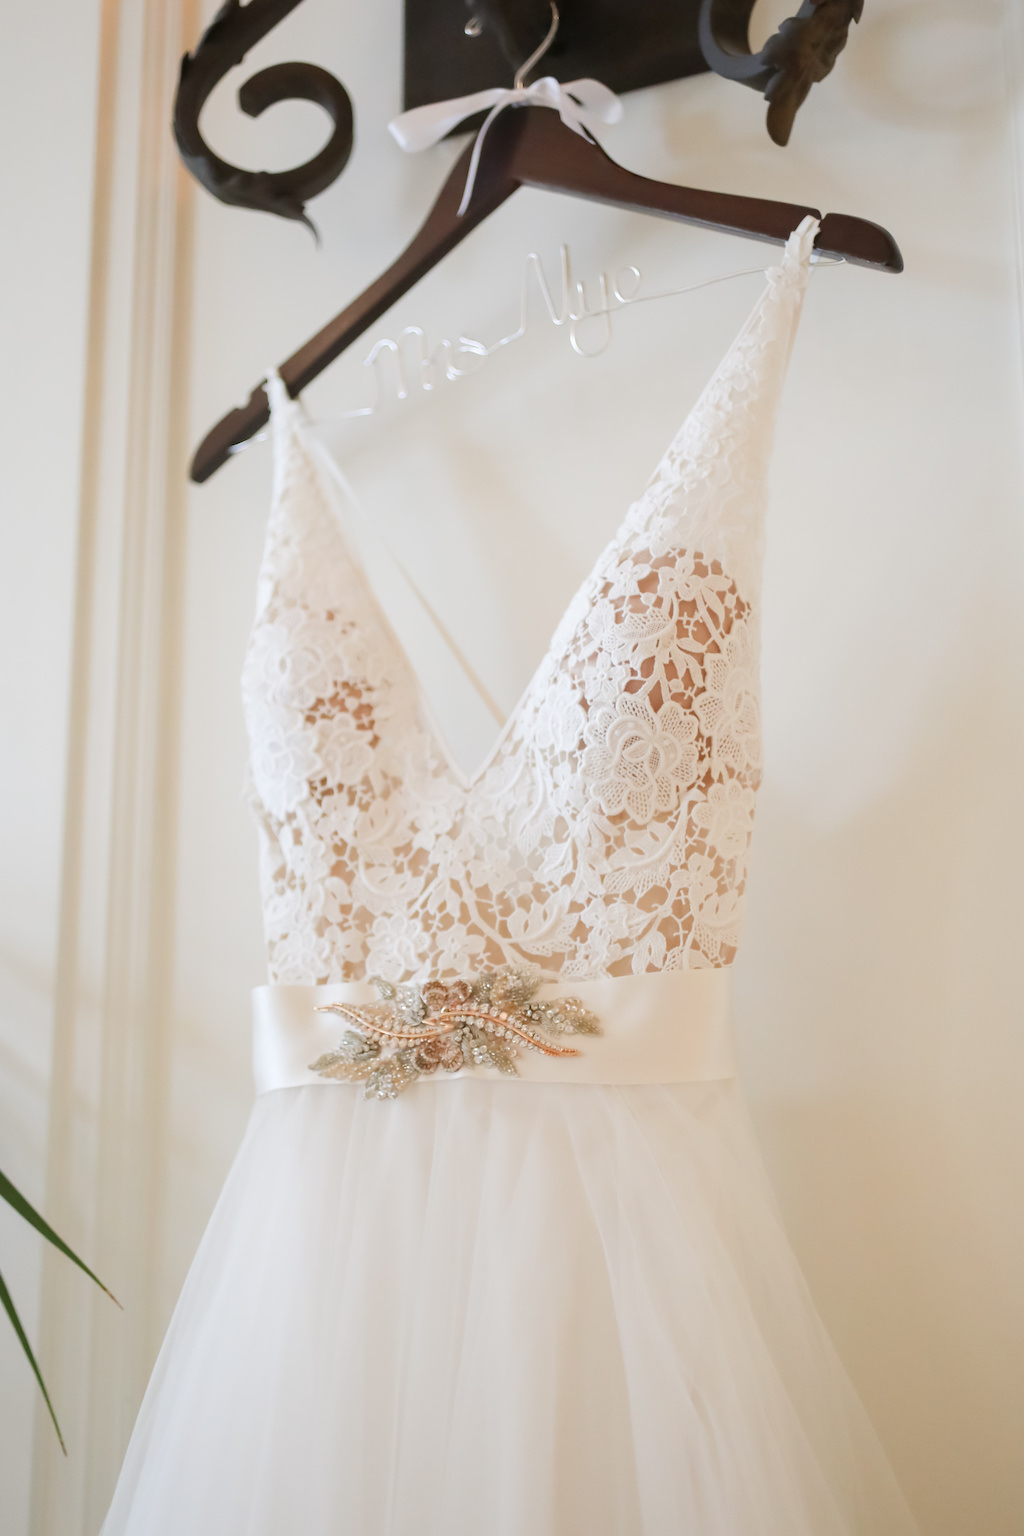 Lace Nude and White Deep V Neckline with Straps, Ivory Sash and Floral Rhinestone Brooch, Tulle and Illusion Skirt on Custom Wooden Hanger   Tampa Bay Wedding Photographer Lifelong Photography Studios